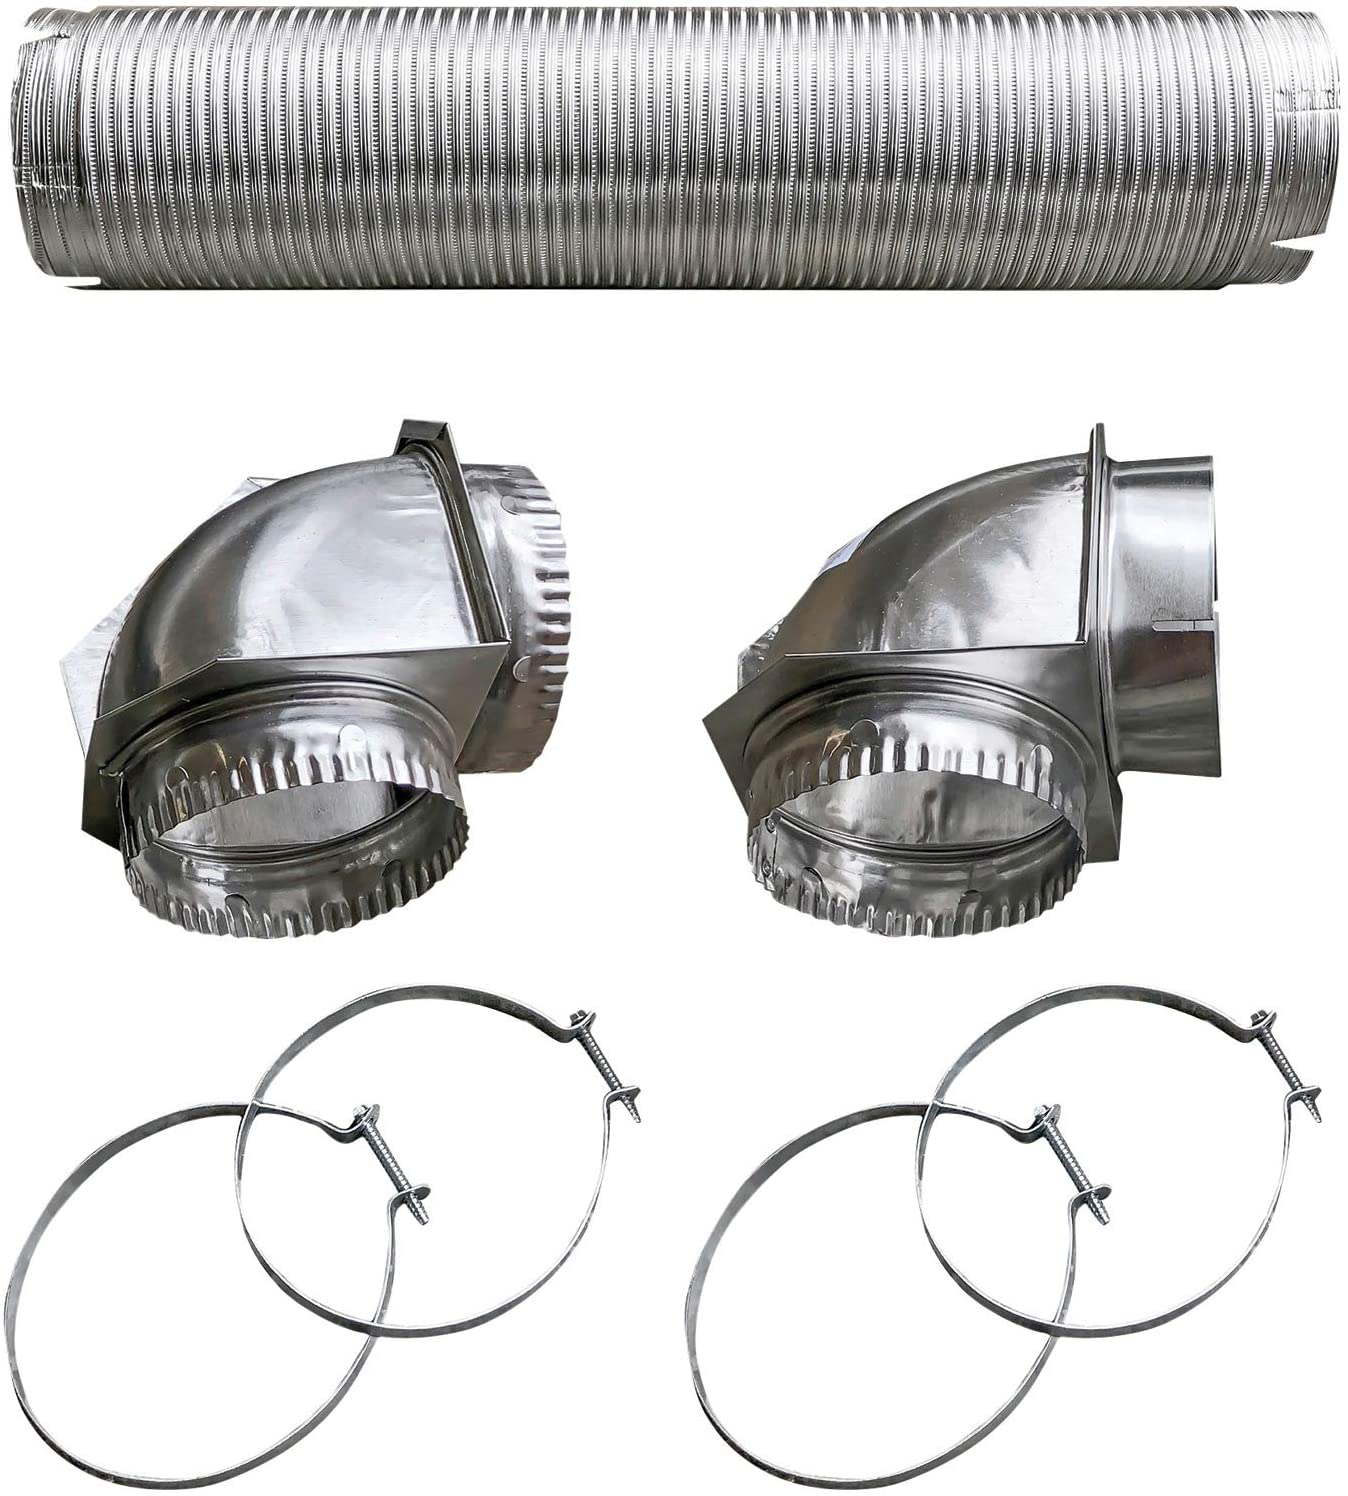 Builder's Best BDB110050 Semi-Rigid Dryer Vent Kit with Close Elbow, Silver